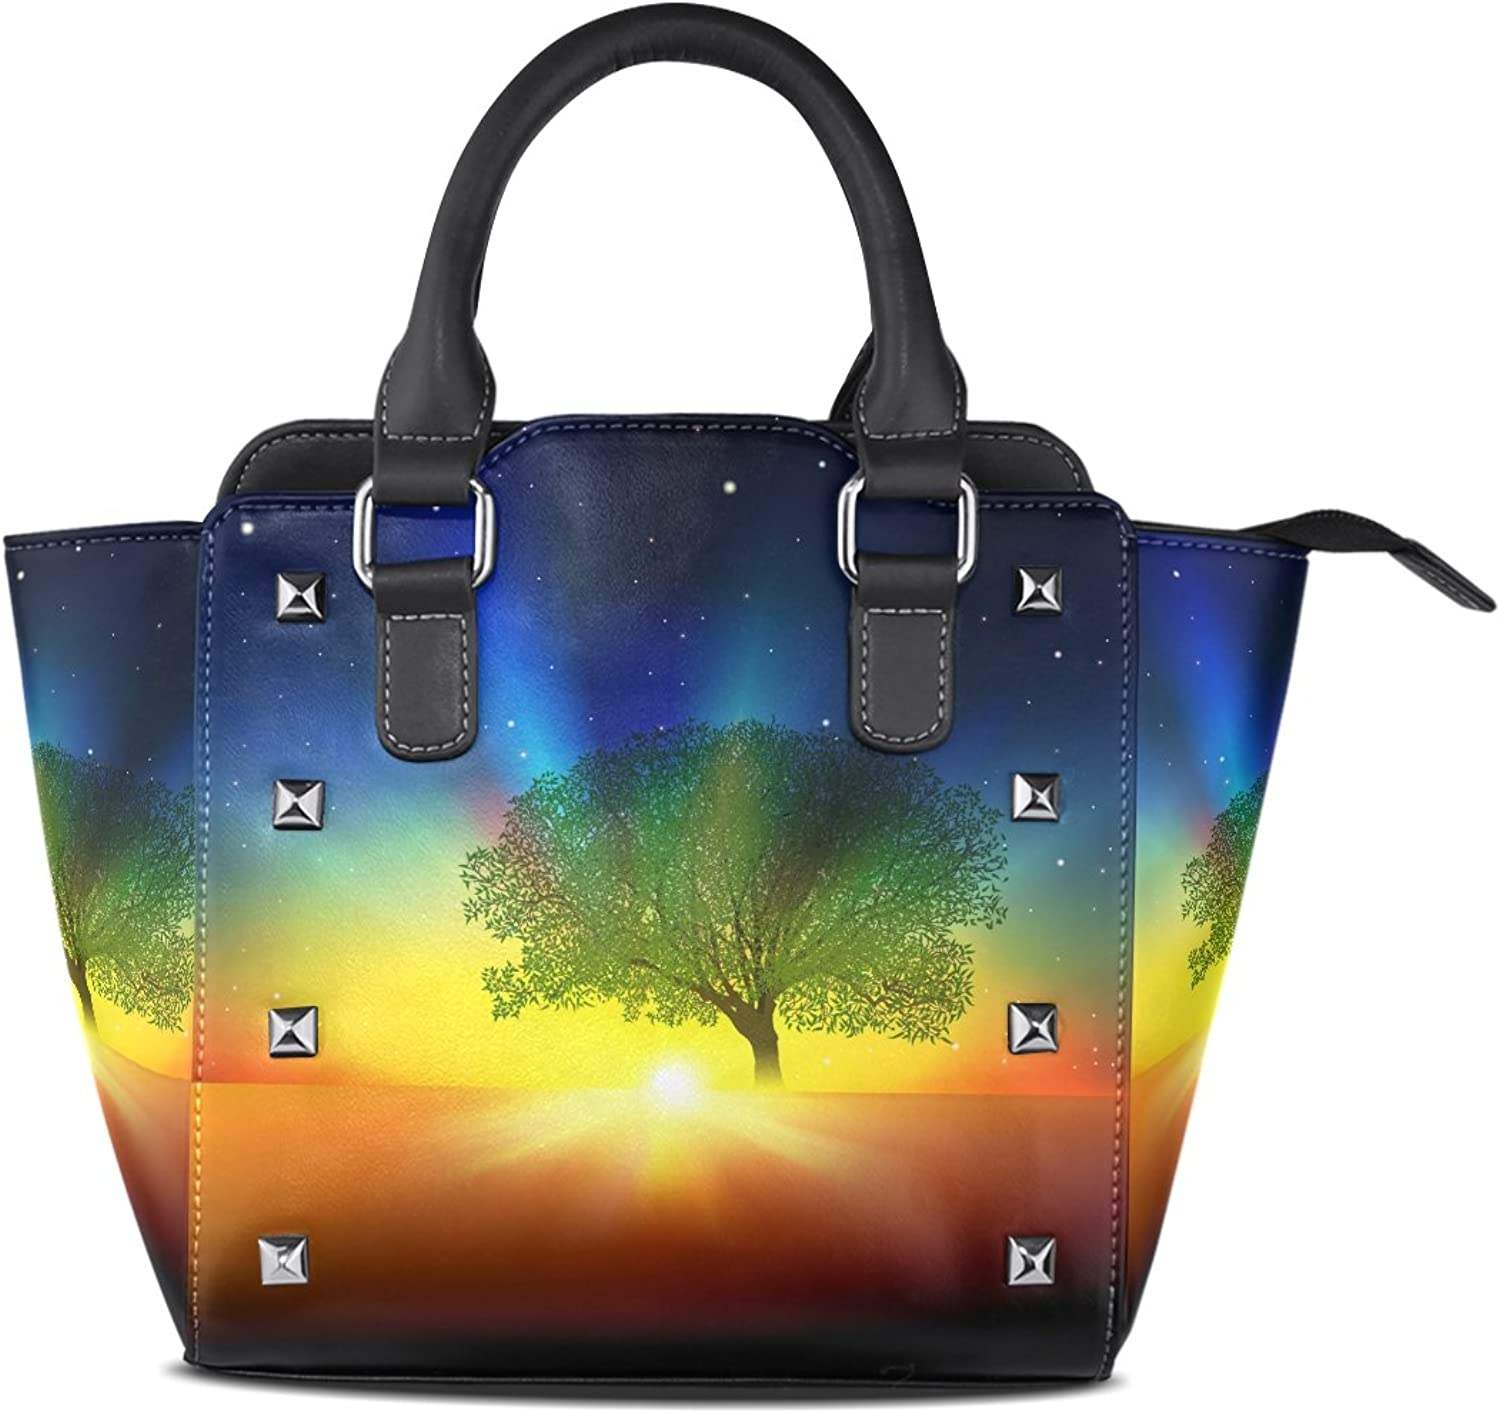 Sunlome Abstract Tree Sunrise and Stars Print Handbags Women's PU Leather Top-Handle Shoulder Bags